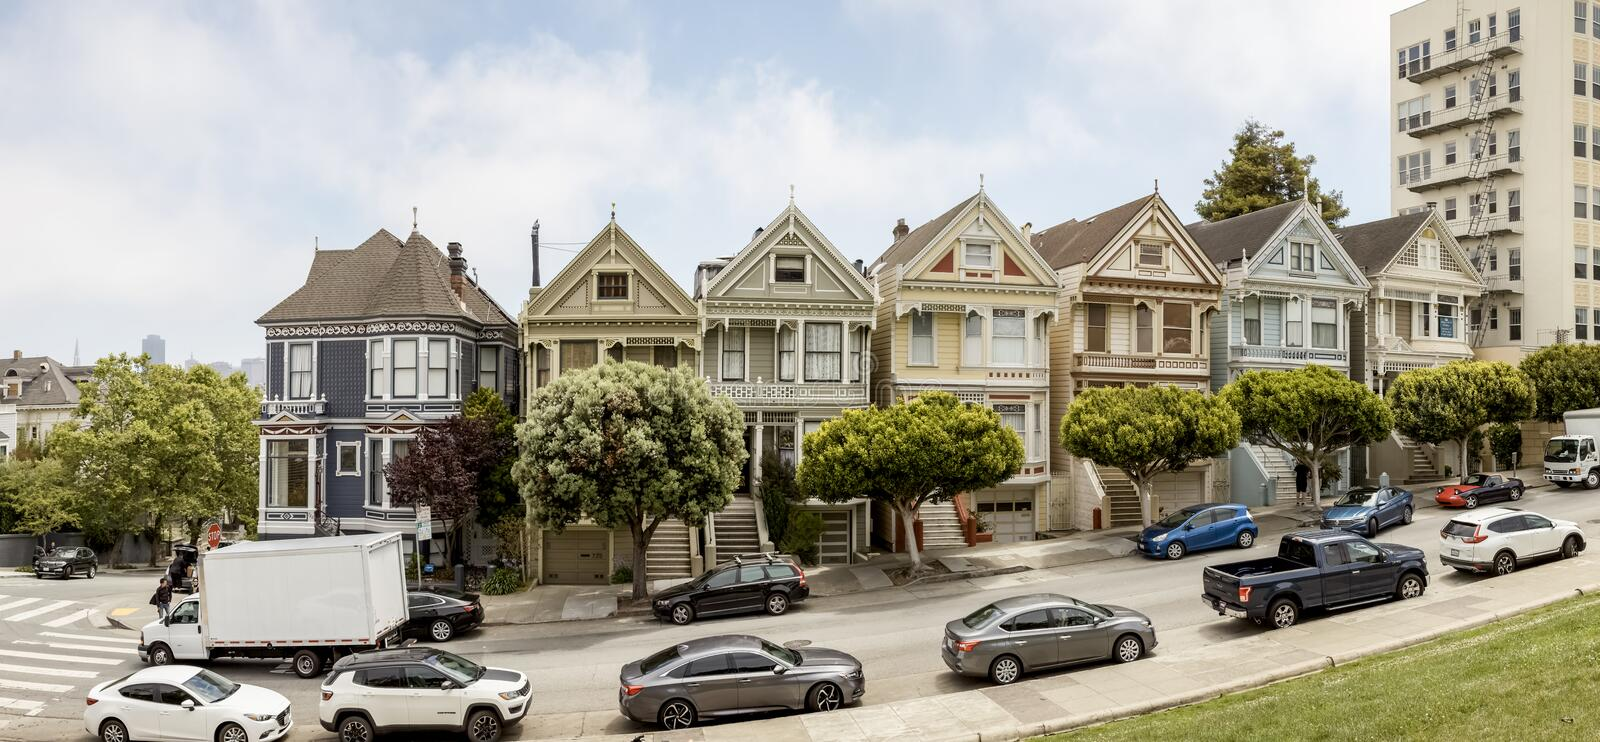 San Francisco, Painted Ladies, architecture, victorian house, California, United States of America, Usa, Alamo Square, panoramic. stock images